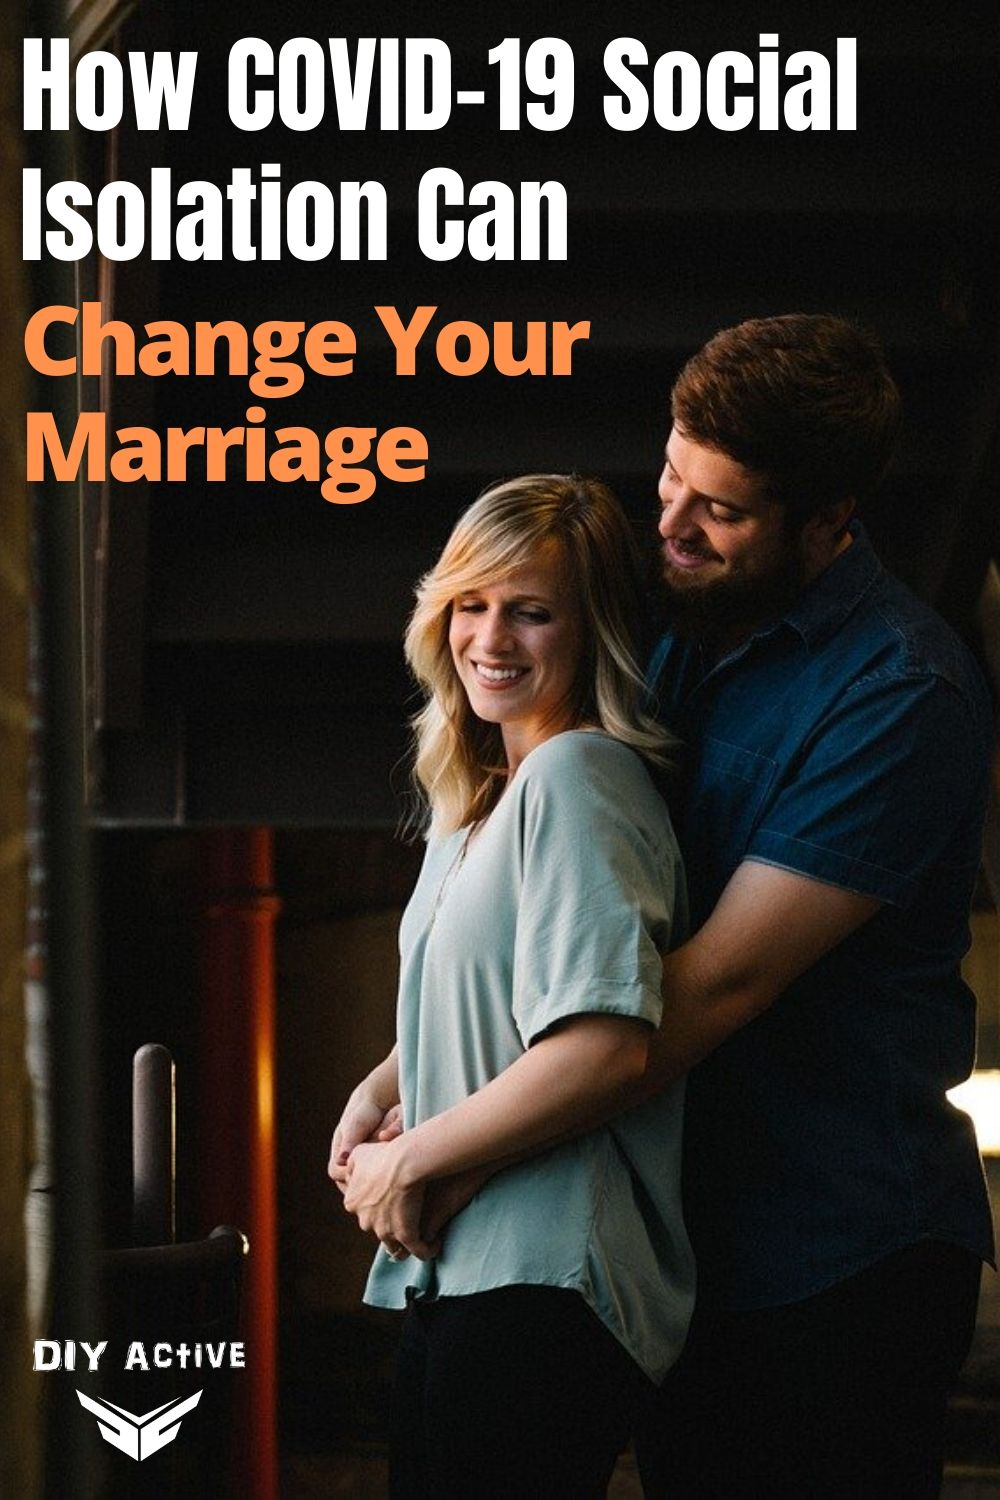 How COVID-19 Social Isolation Can Change Your Marriage Today